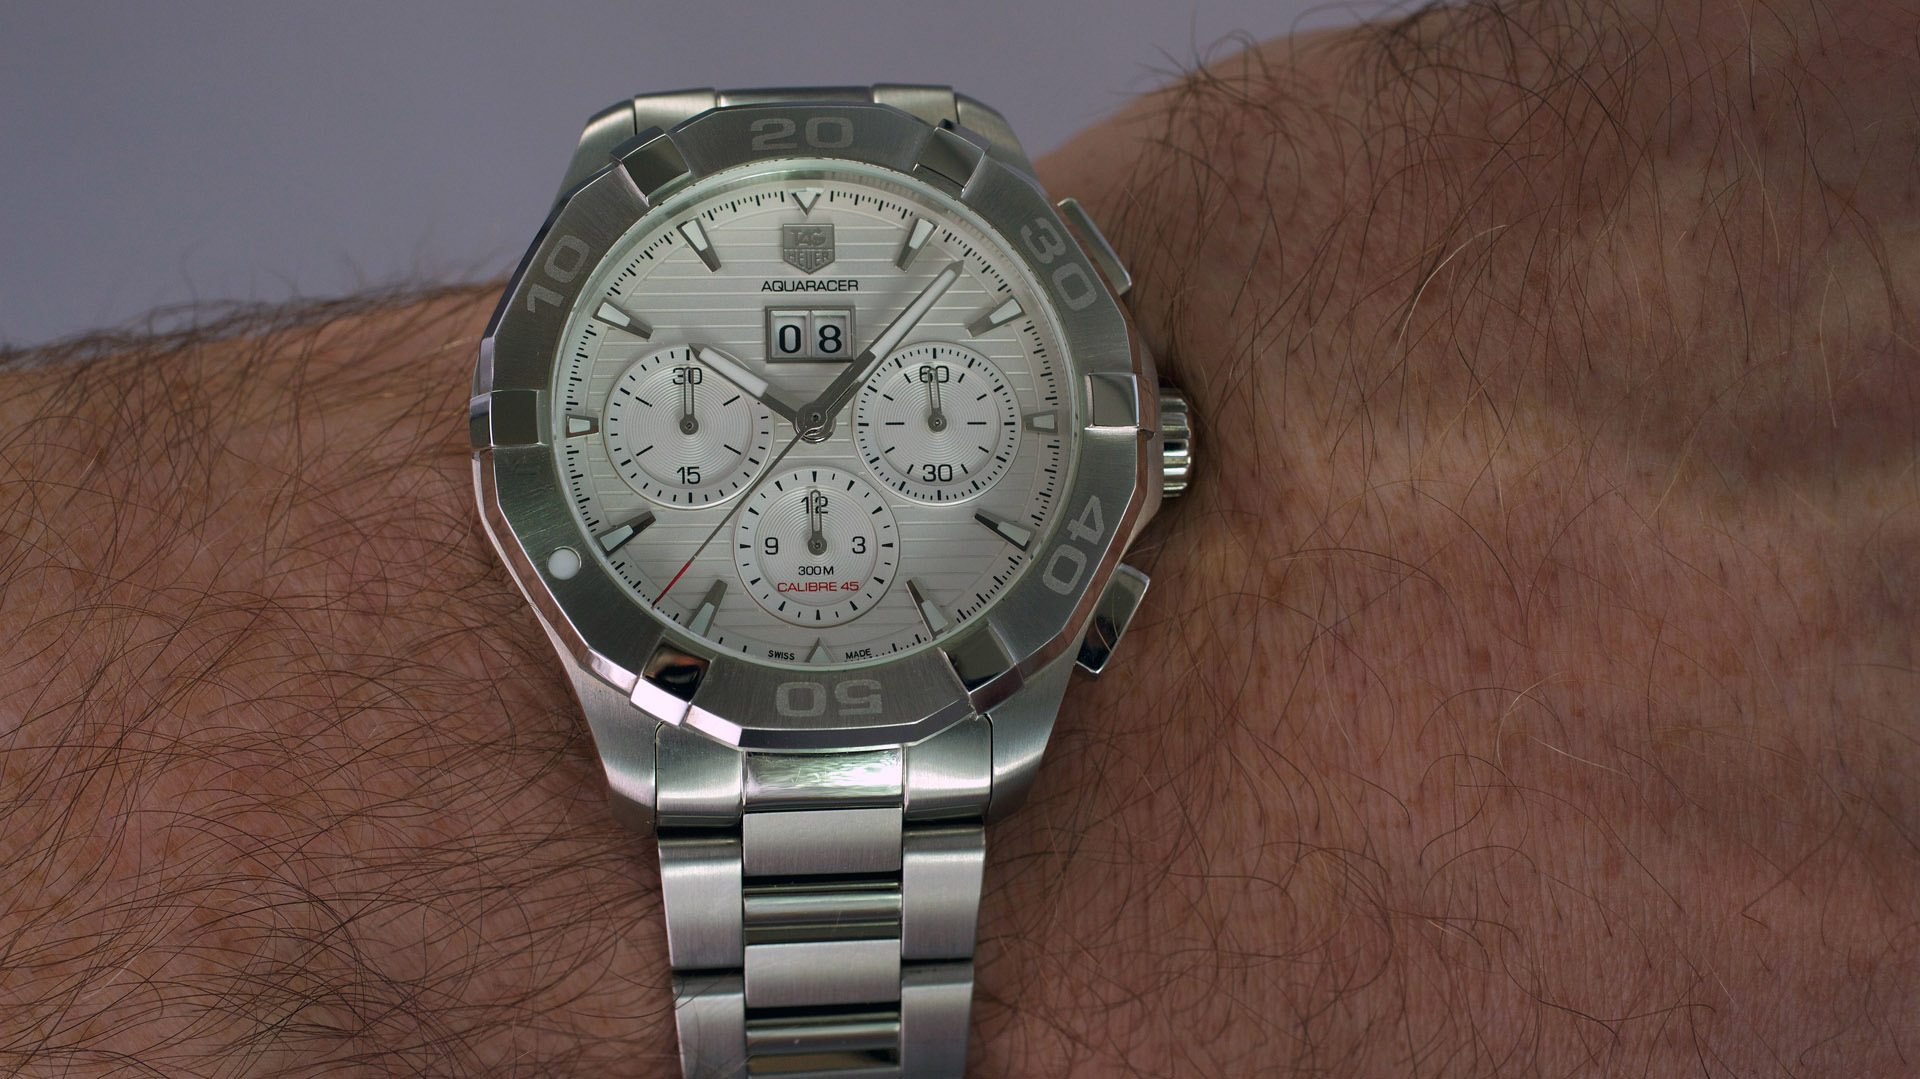 Calibre 45 Tag Heuer Aquaracer 300m Calibre 45 Automatic Chronograph